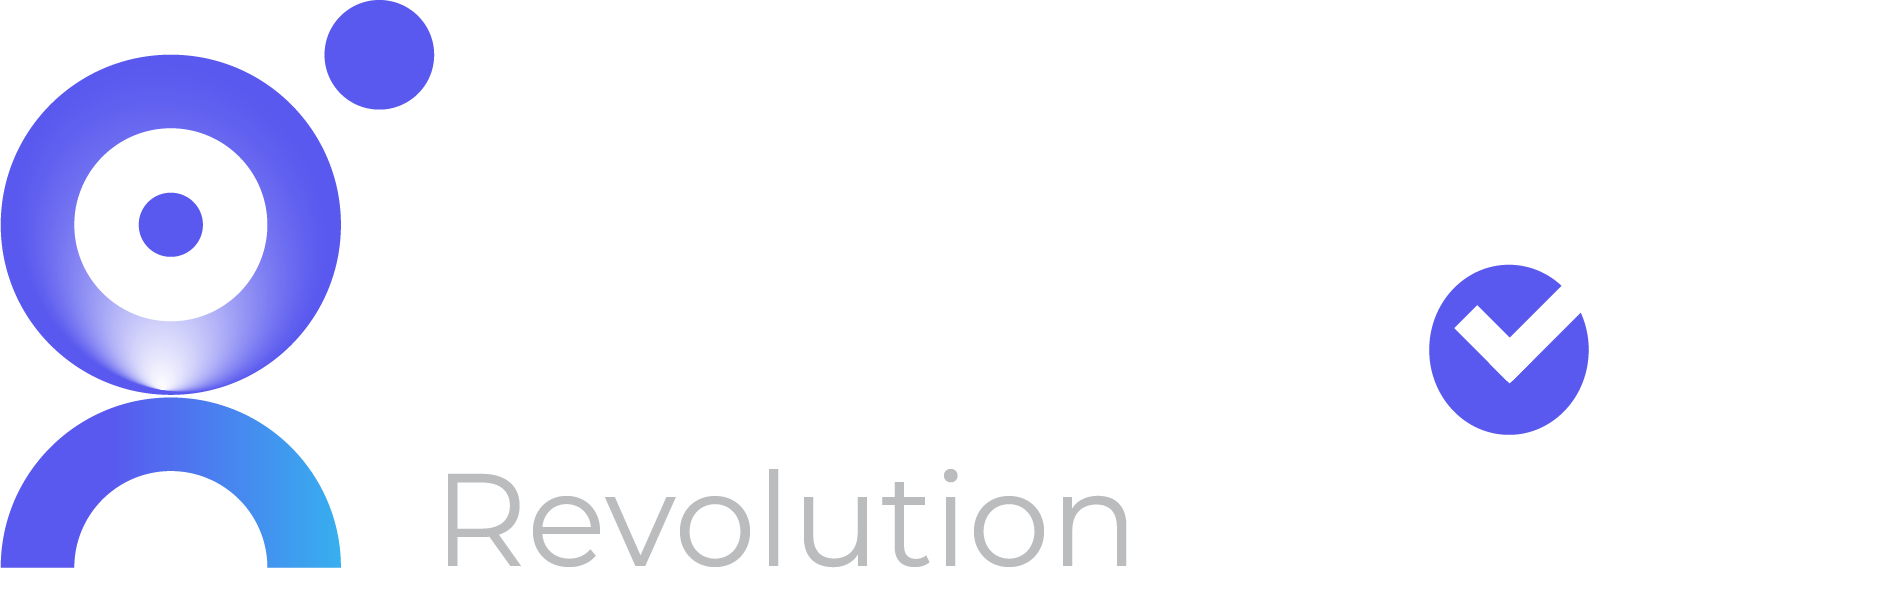 ViralGrow! | The Community of famous Influencers!